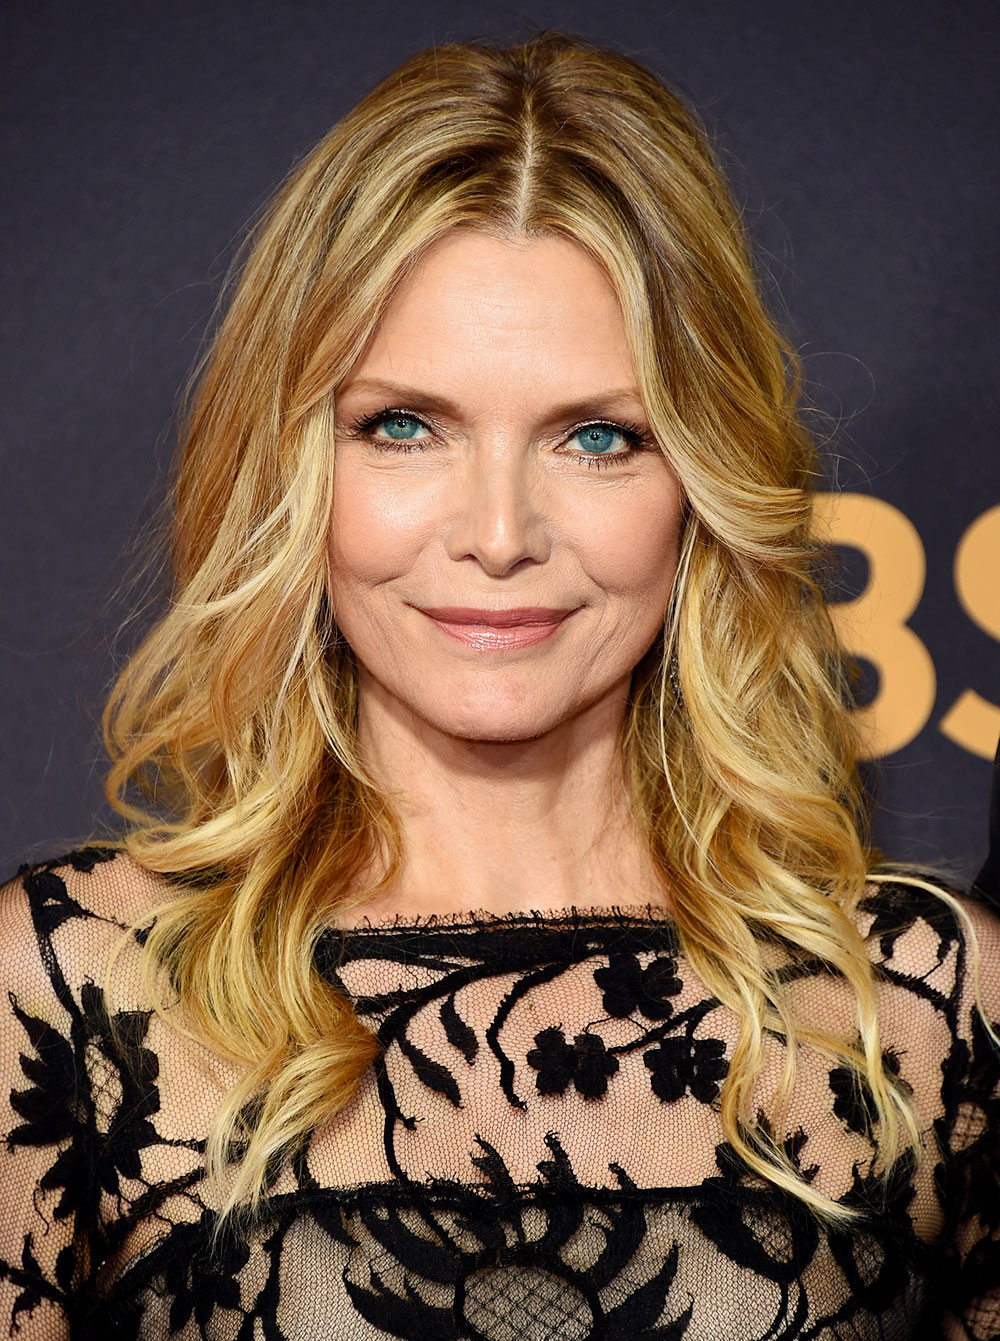 InStyle December Style 100 - Embed - 16 Michelle Pfeiffer